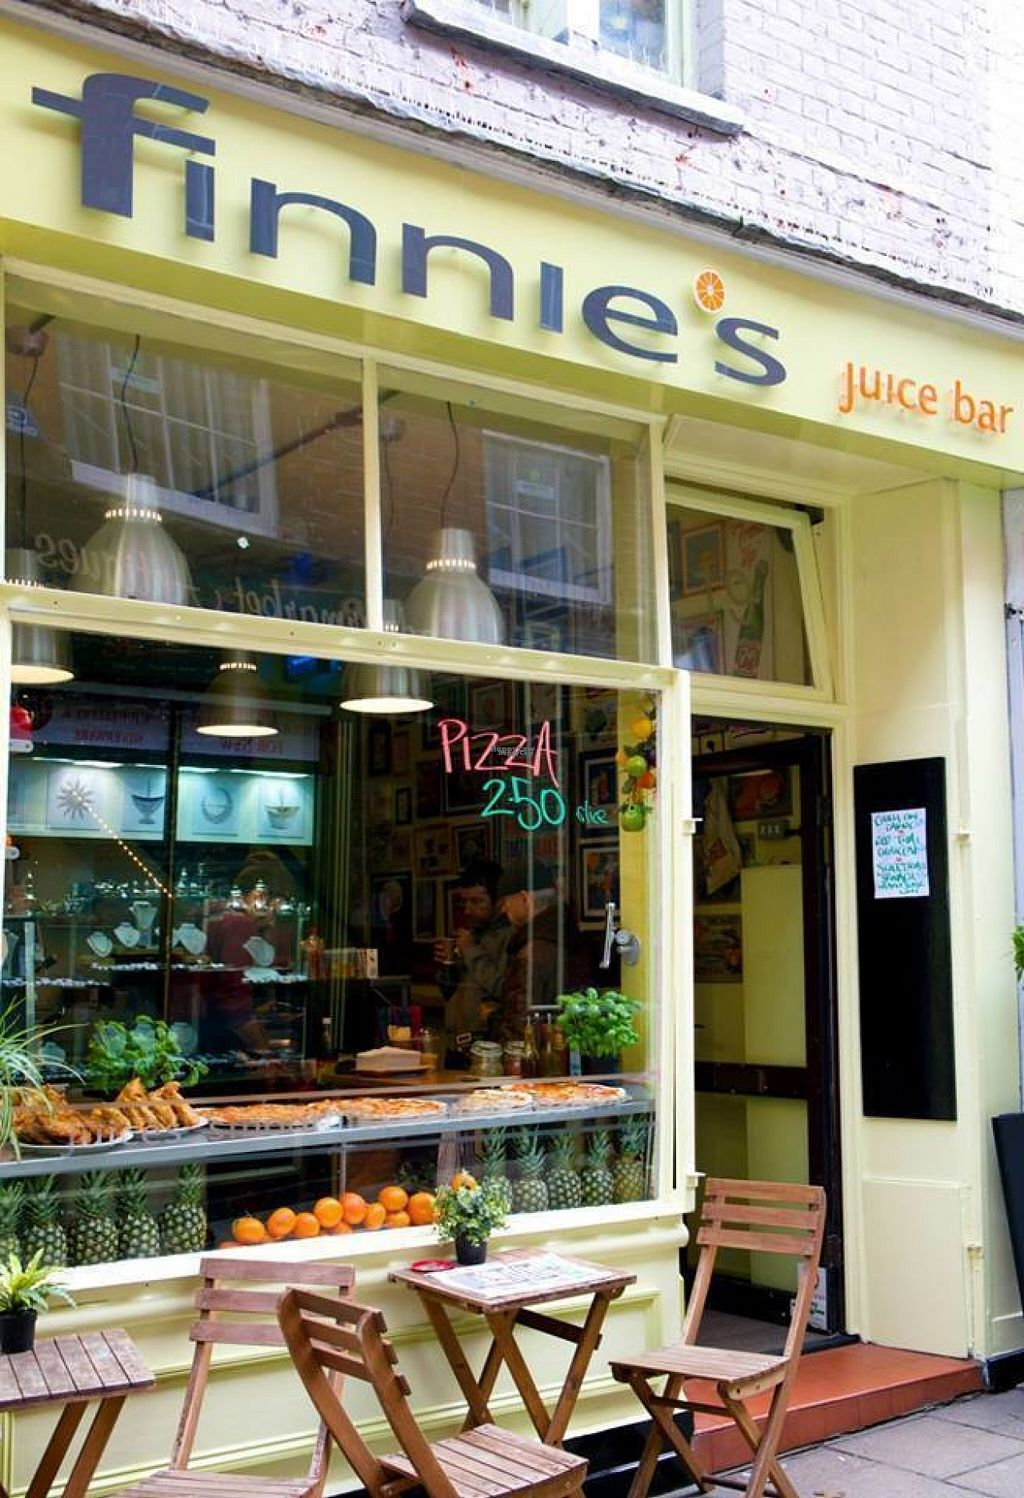 """Photo of Finnie's Juice Bar  by <a href=""""/members/profile/Meaks"""">Meaks</a> <br/>Finnie's Juice Bar <br/> August 4, 2016  - <a href='/contact/abuse/image/73135/165357'>Report</a>"""